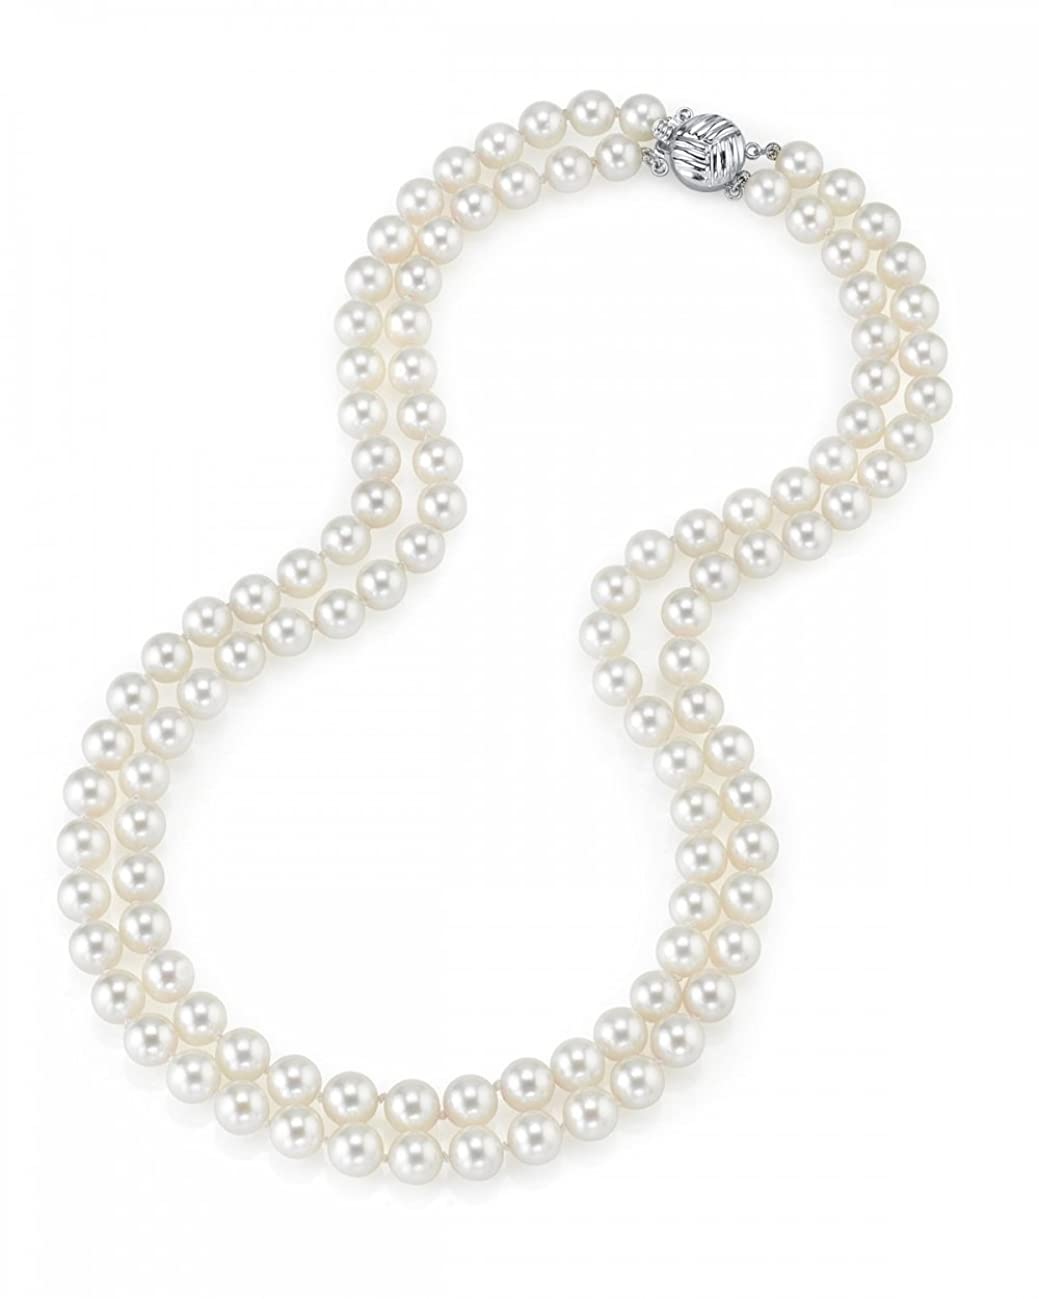 THE PEARL SOURCE 14K Gold 9-10mm AAA Quality Double Strand White Freshwater Cultured Pearl Necklace for Women in 18-19